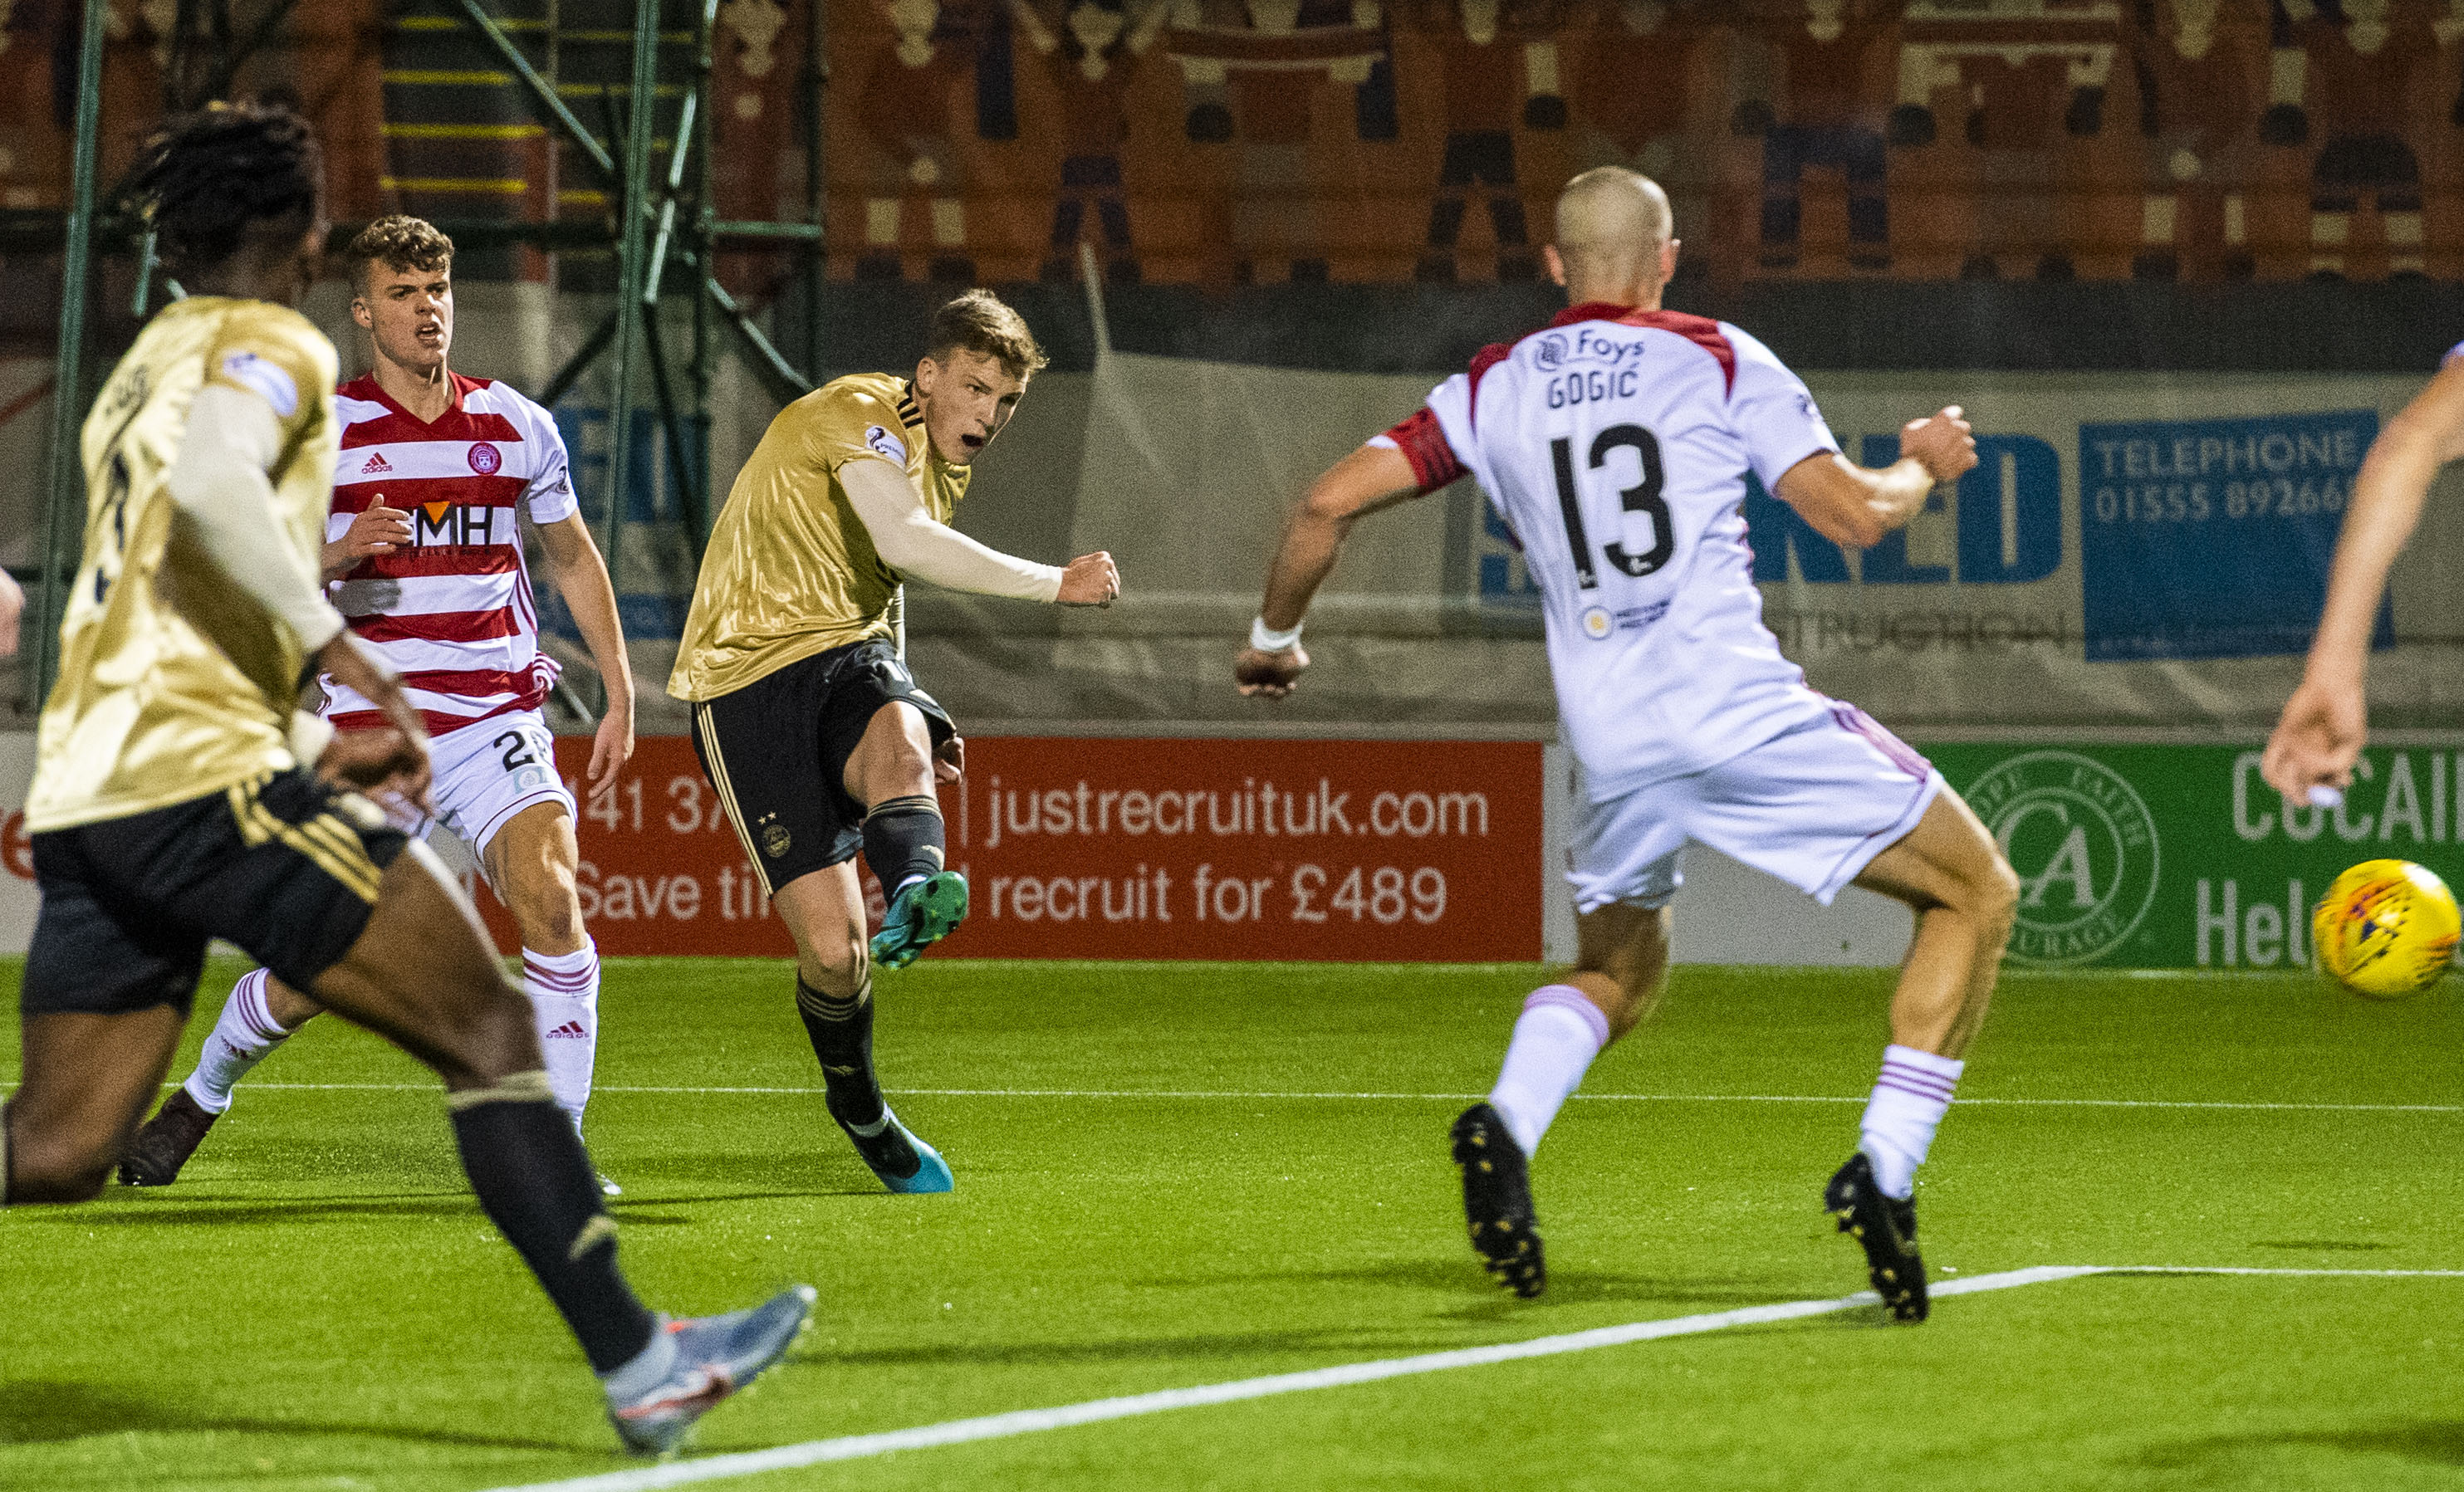 Aberdeen's Lewis Ferguson opens the scoring during a Ladbrokes Premiership match between Hamilton and Aberdeen at the FOY Stadium, on October 30, 2019.